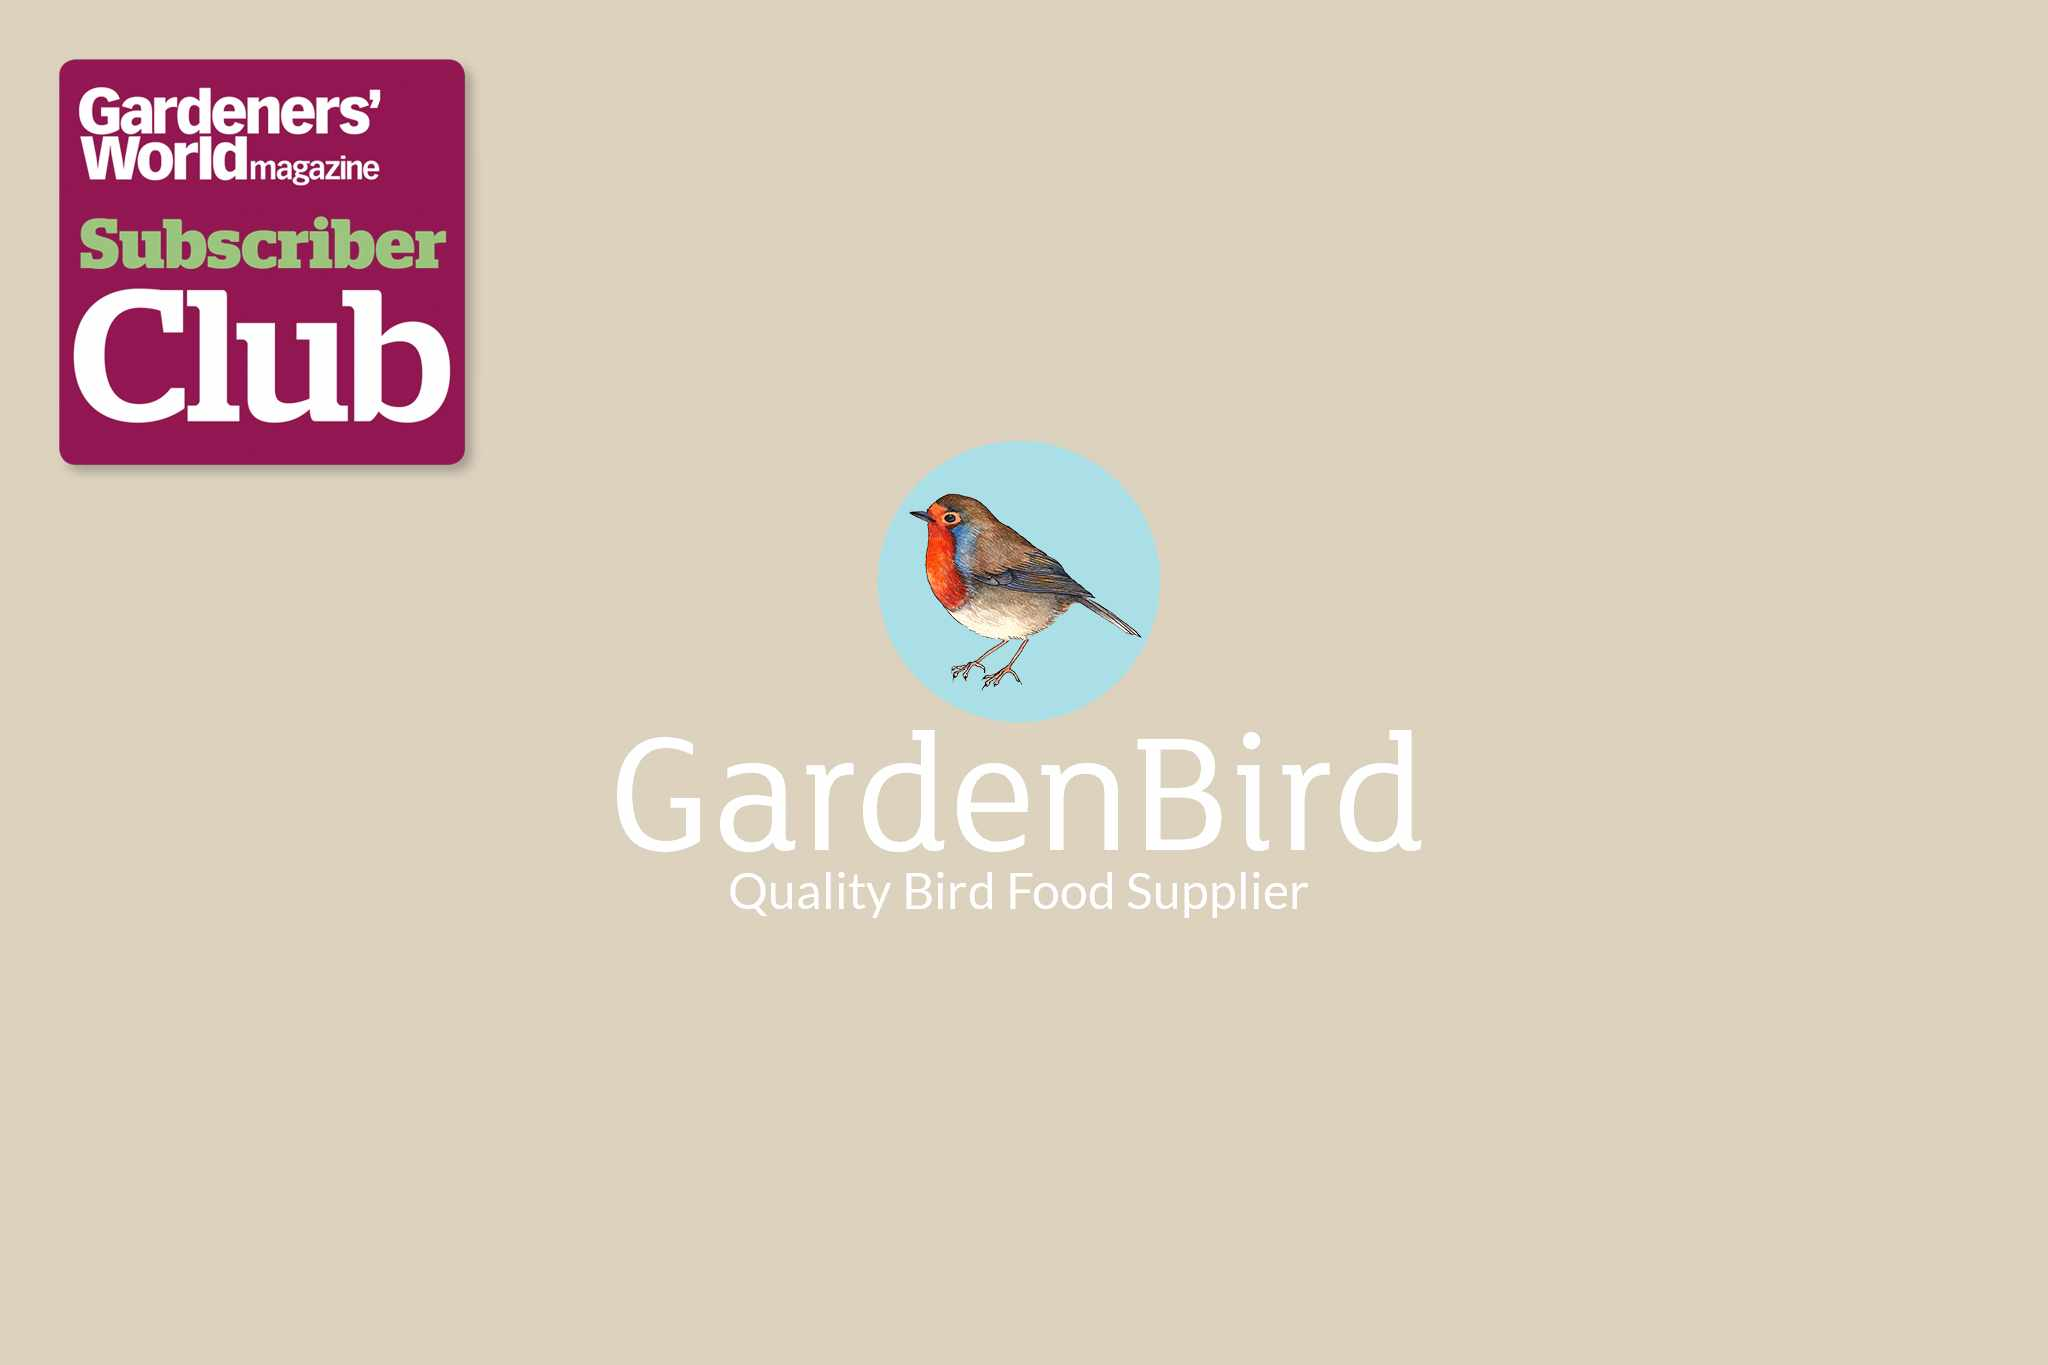 Garden Bird Supplies BBC Gardeners' World Magazine Subscriber Club discount